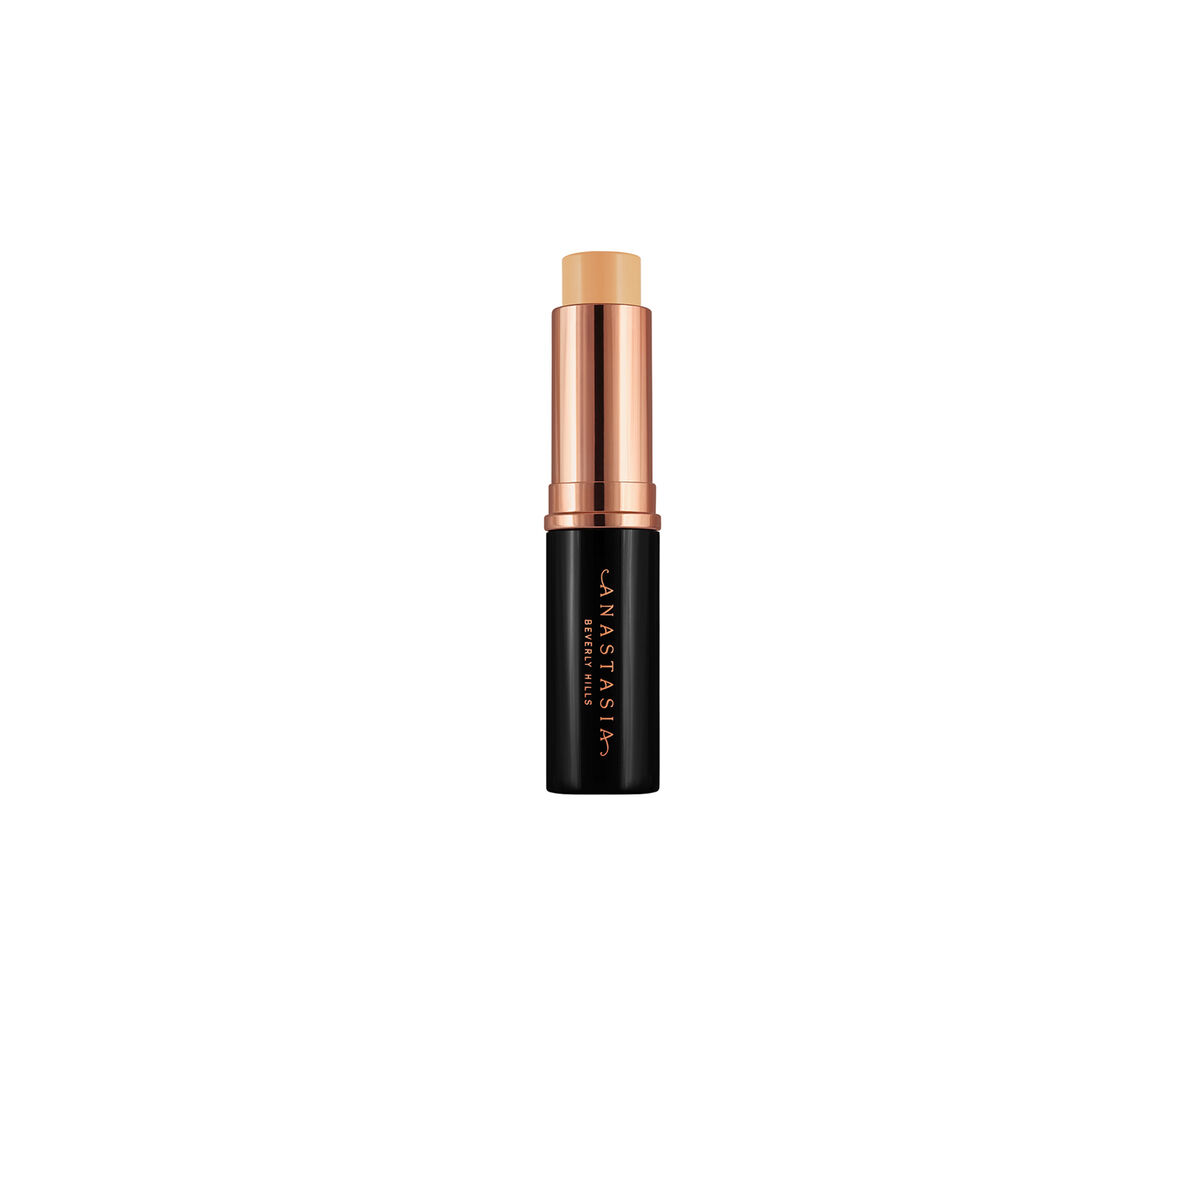 Stick Foundation - Tan